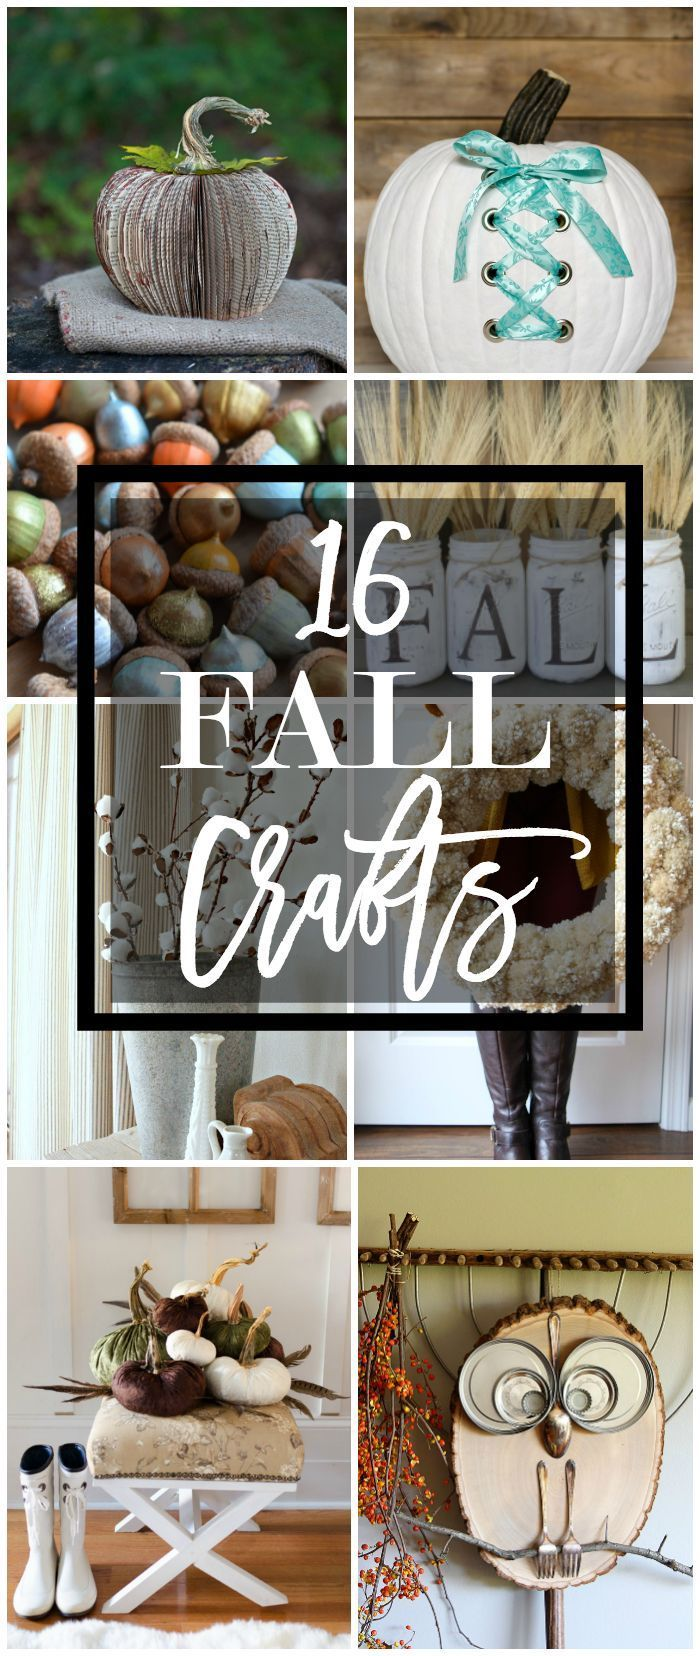 fall craft easy crafts diy homestoriesatoz stories sell decor holiday collect thanksgiving pumpkins velvet